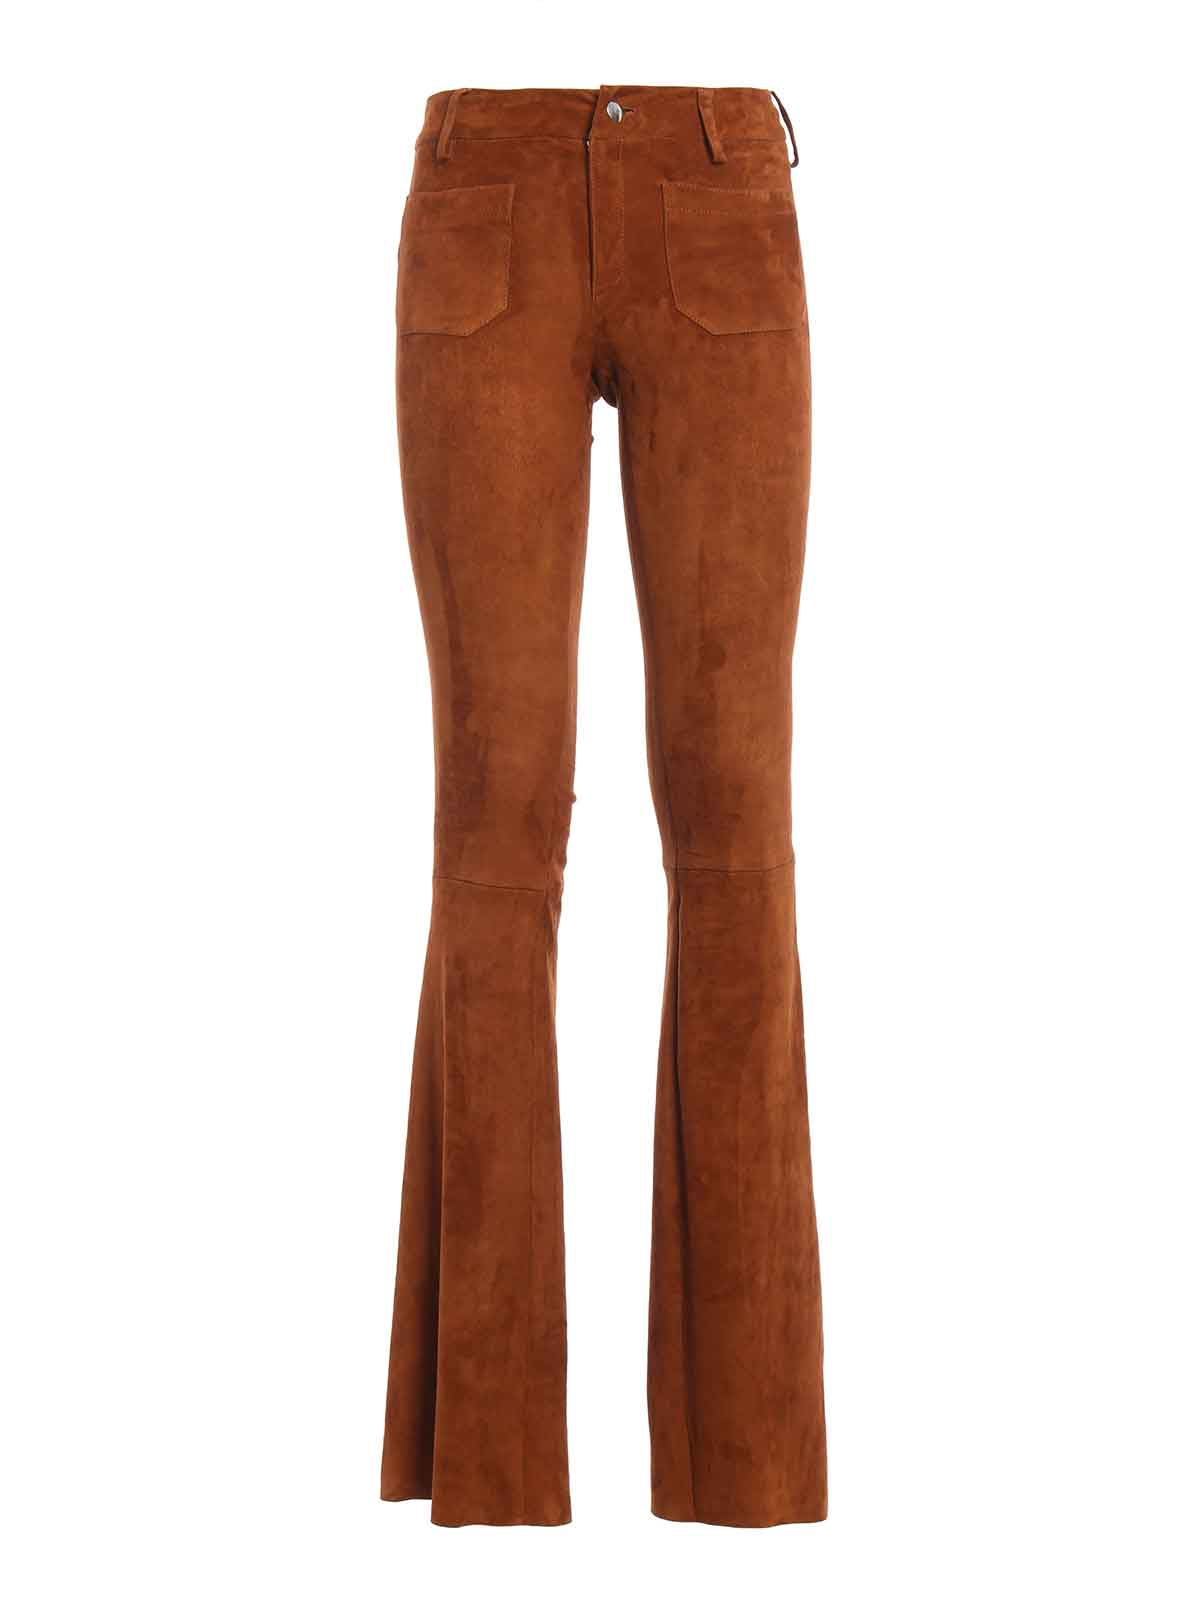 Men's Ariat Jeans Pants Suede riding patches Sz 36 x 32 Reg Western Work Thick durable cotton with just a touch of spandex to allow for a little stretch. Brown/khaki color.